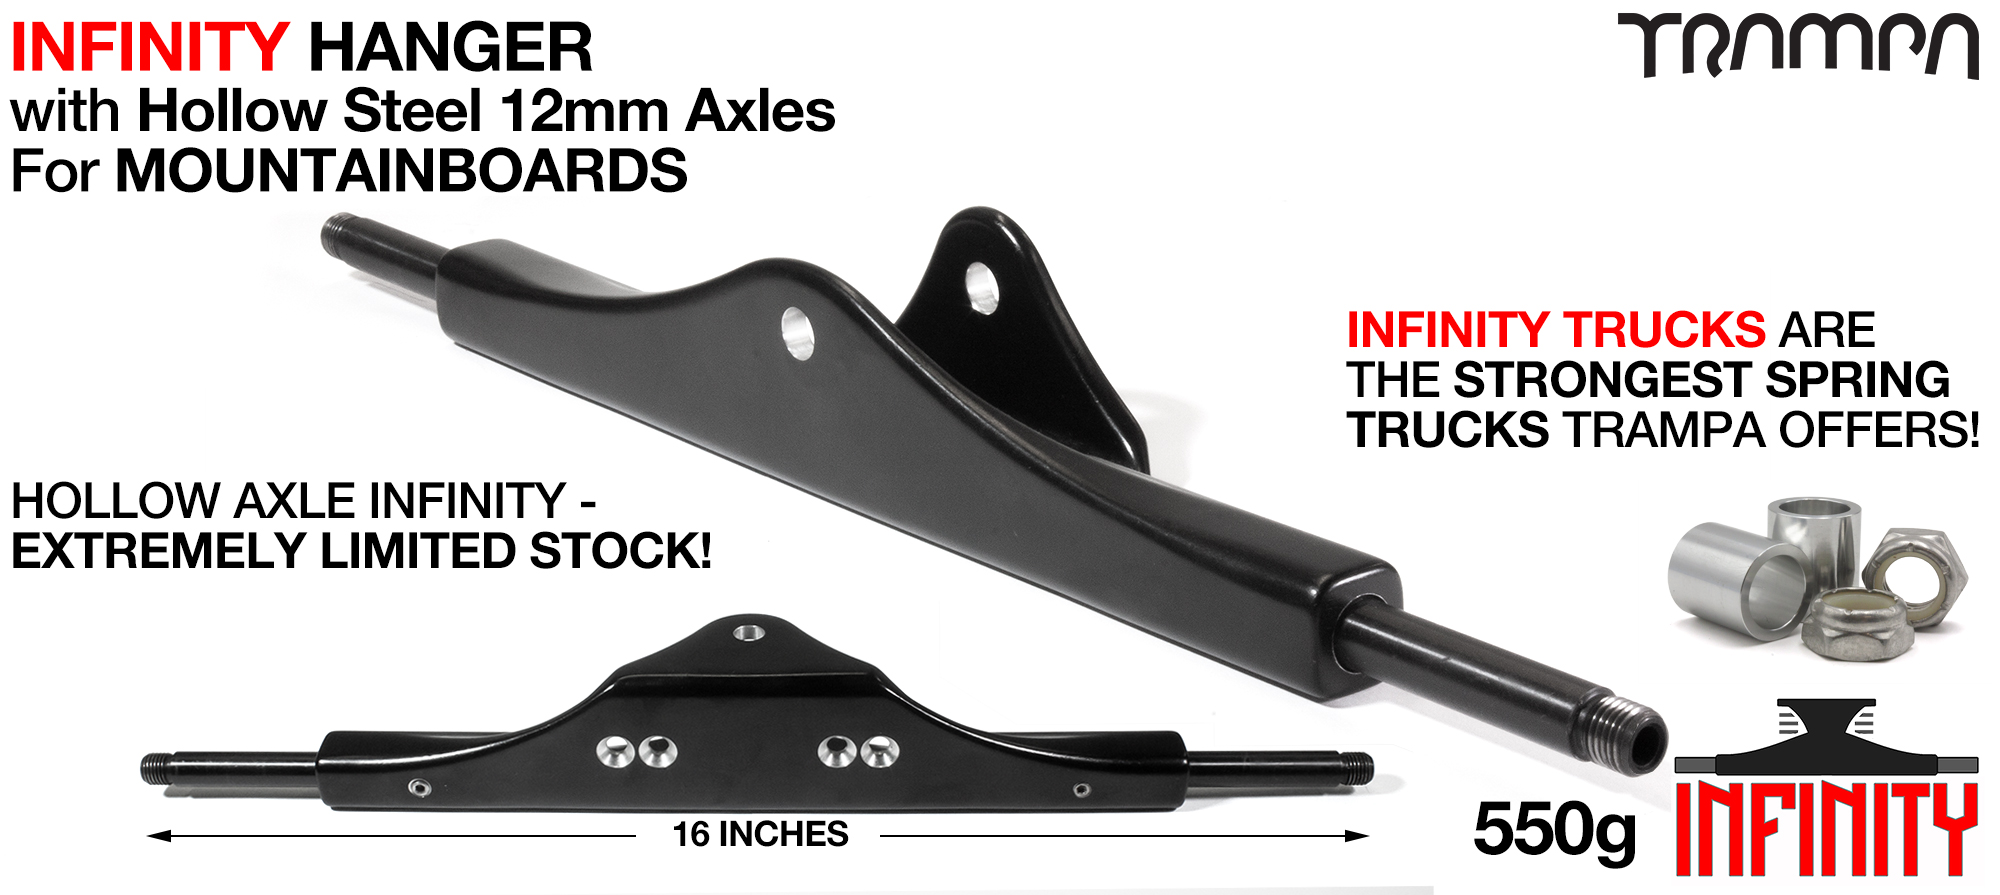 INFINITY ATB Hanger - 12mm HOLLOW Axles Painted Black & CNC'd Kingpin hole